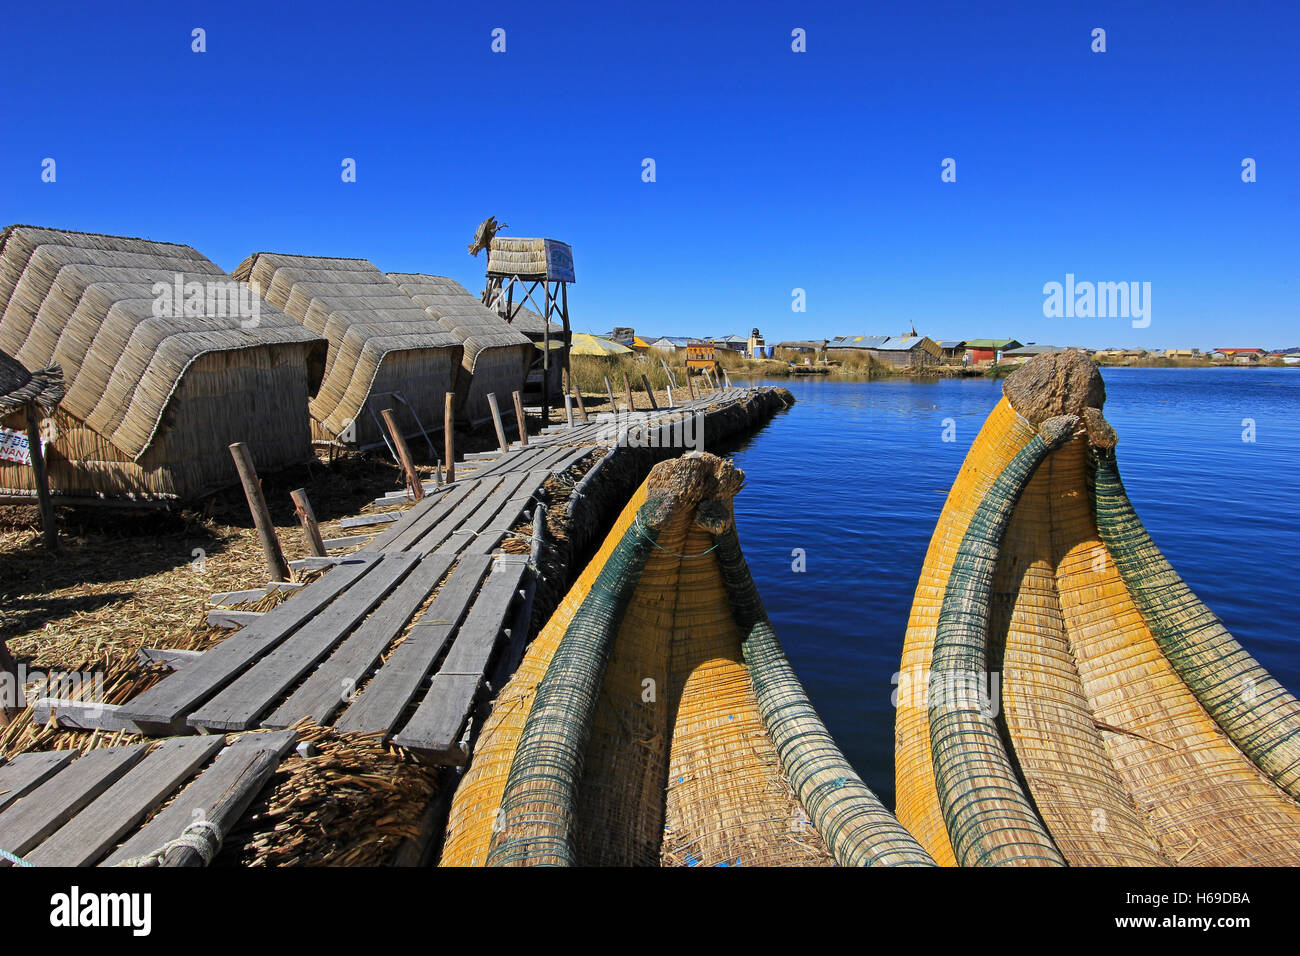 Totora reed floating islands Uros, lake Titicaca, Peru - Stock Image